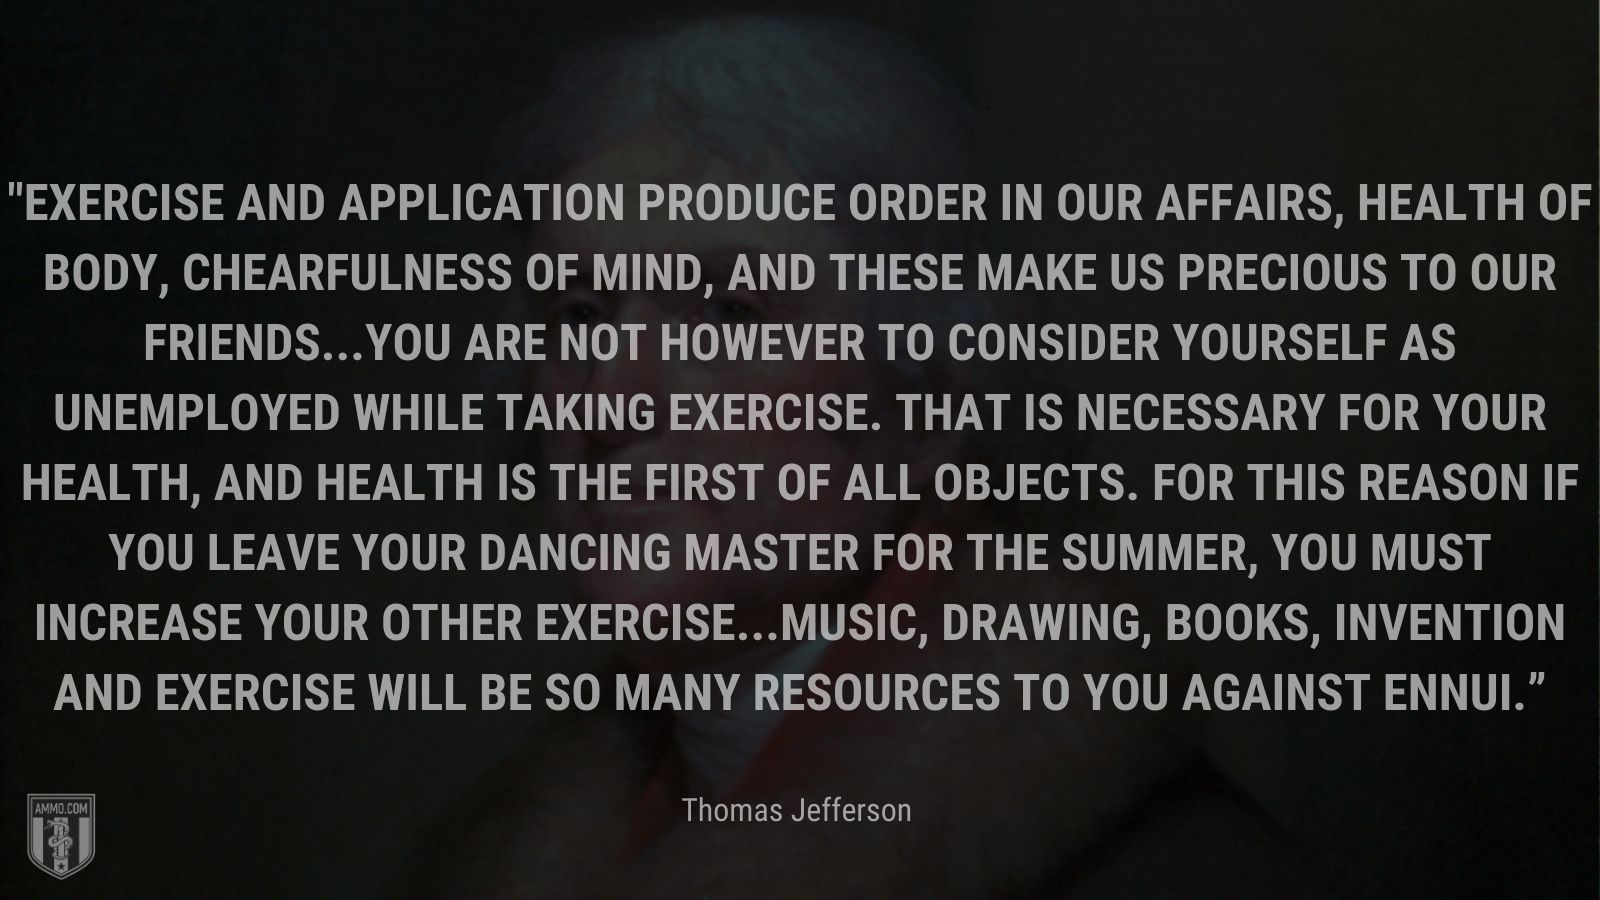 """""""Exercise and application produce order in our affairs, health of body, chearfulness of mind, and these make us precious to our friends...You are not however to consider yourself as unemployed while taking exercise. That is necessary for your health, and health is the first of all objects. For this reason if you leave your dancing master for the summer, you must increase your other exercise...Music, drawing, books, invention and exercise will be so many resources to you against ennui."""" - Thomas Jefferson"""